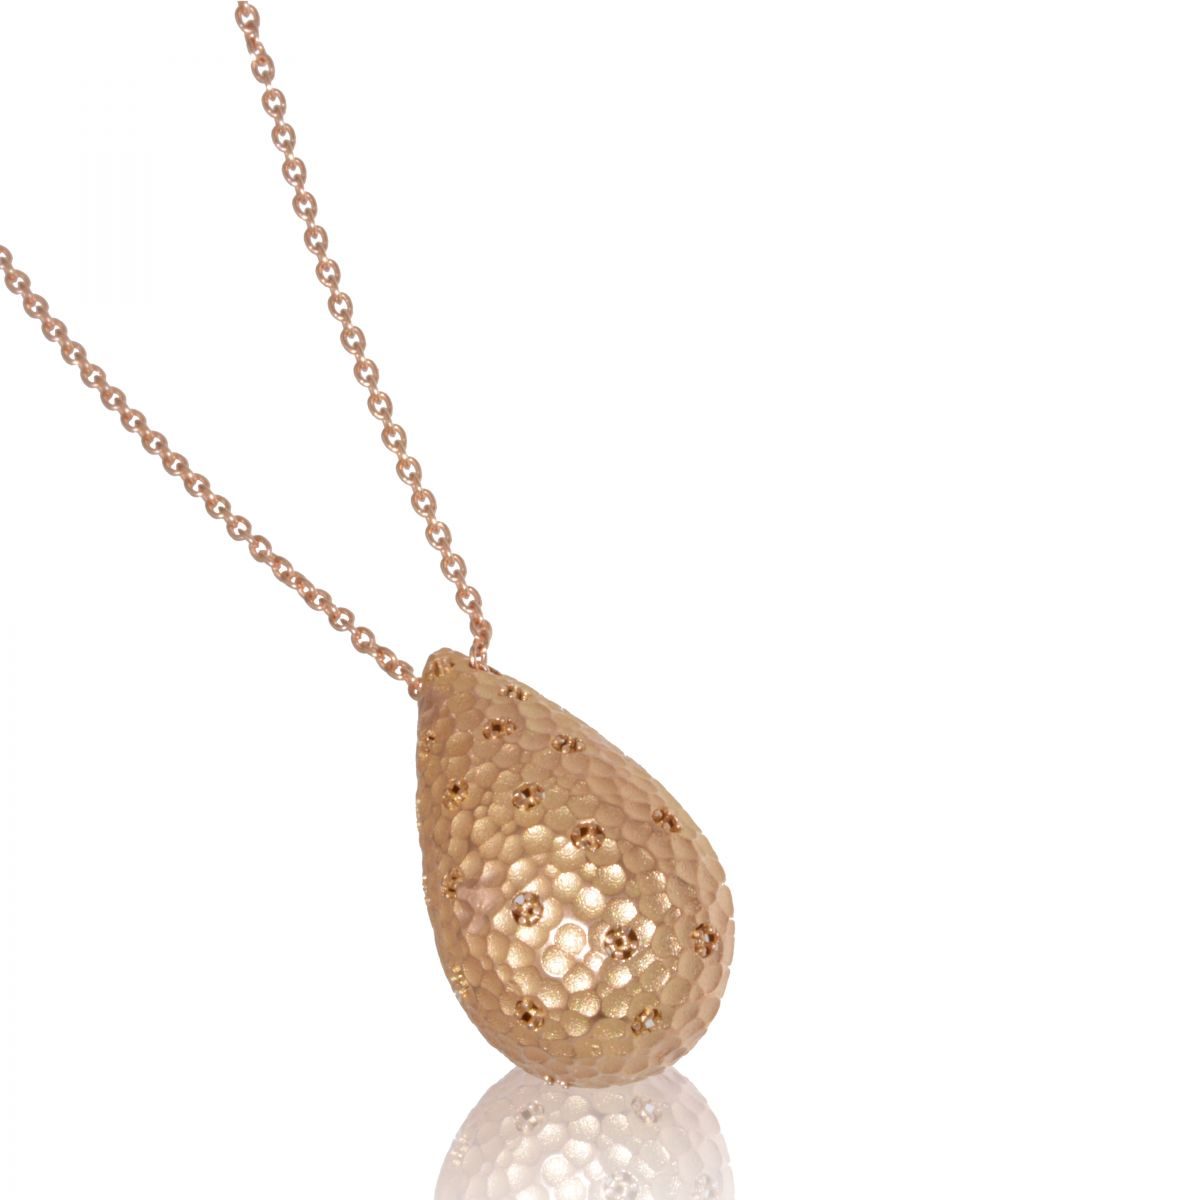 hammered pendant w sparse stones with chain pendants